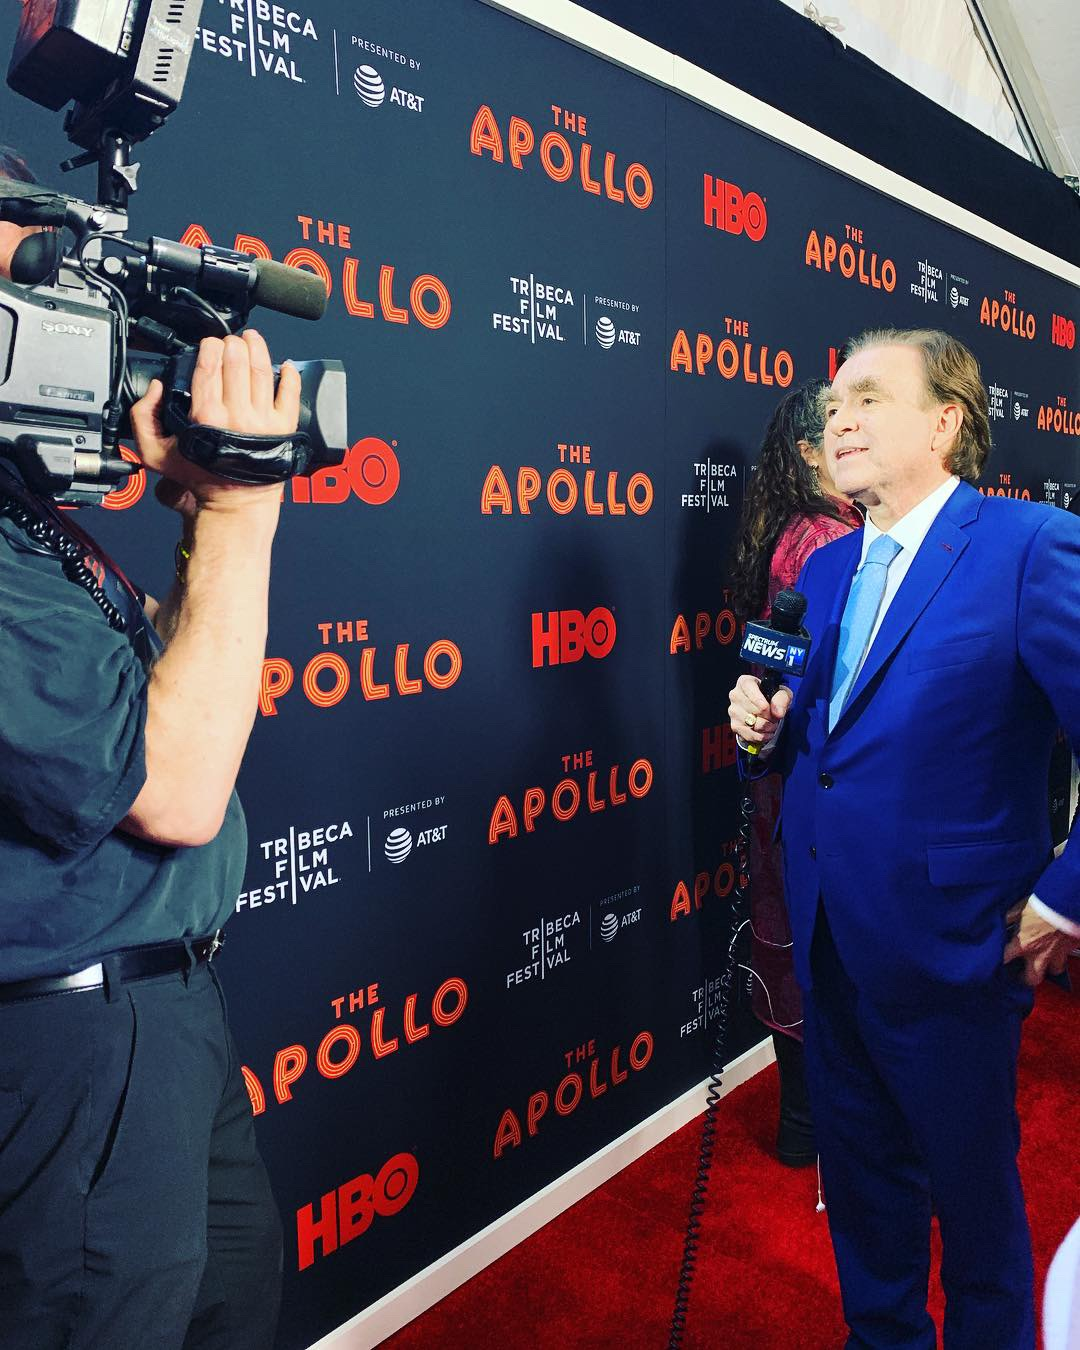 George hits the red carpets for the 2019 tribeca film festival - The Apollo, A Kid from Coney Island, Of Mics and Men…these are just a few examples of the TFF red carpets that George and his team graced this past spring!